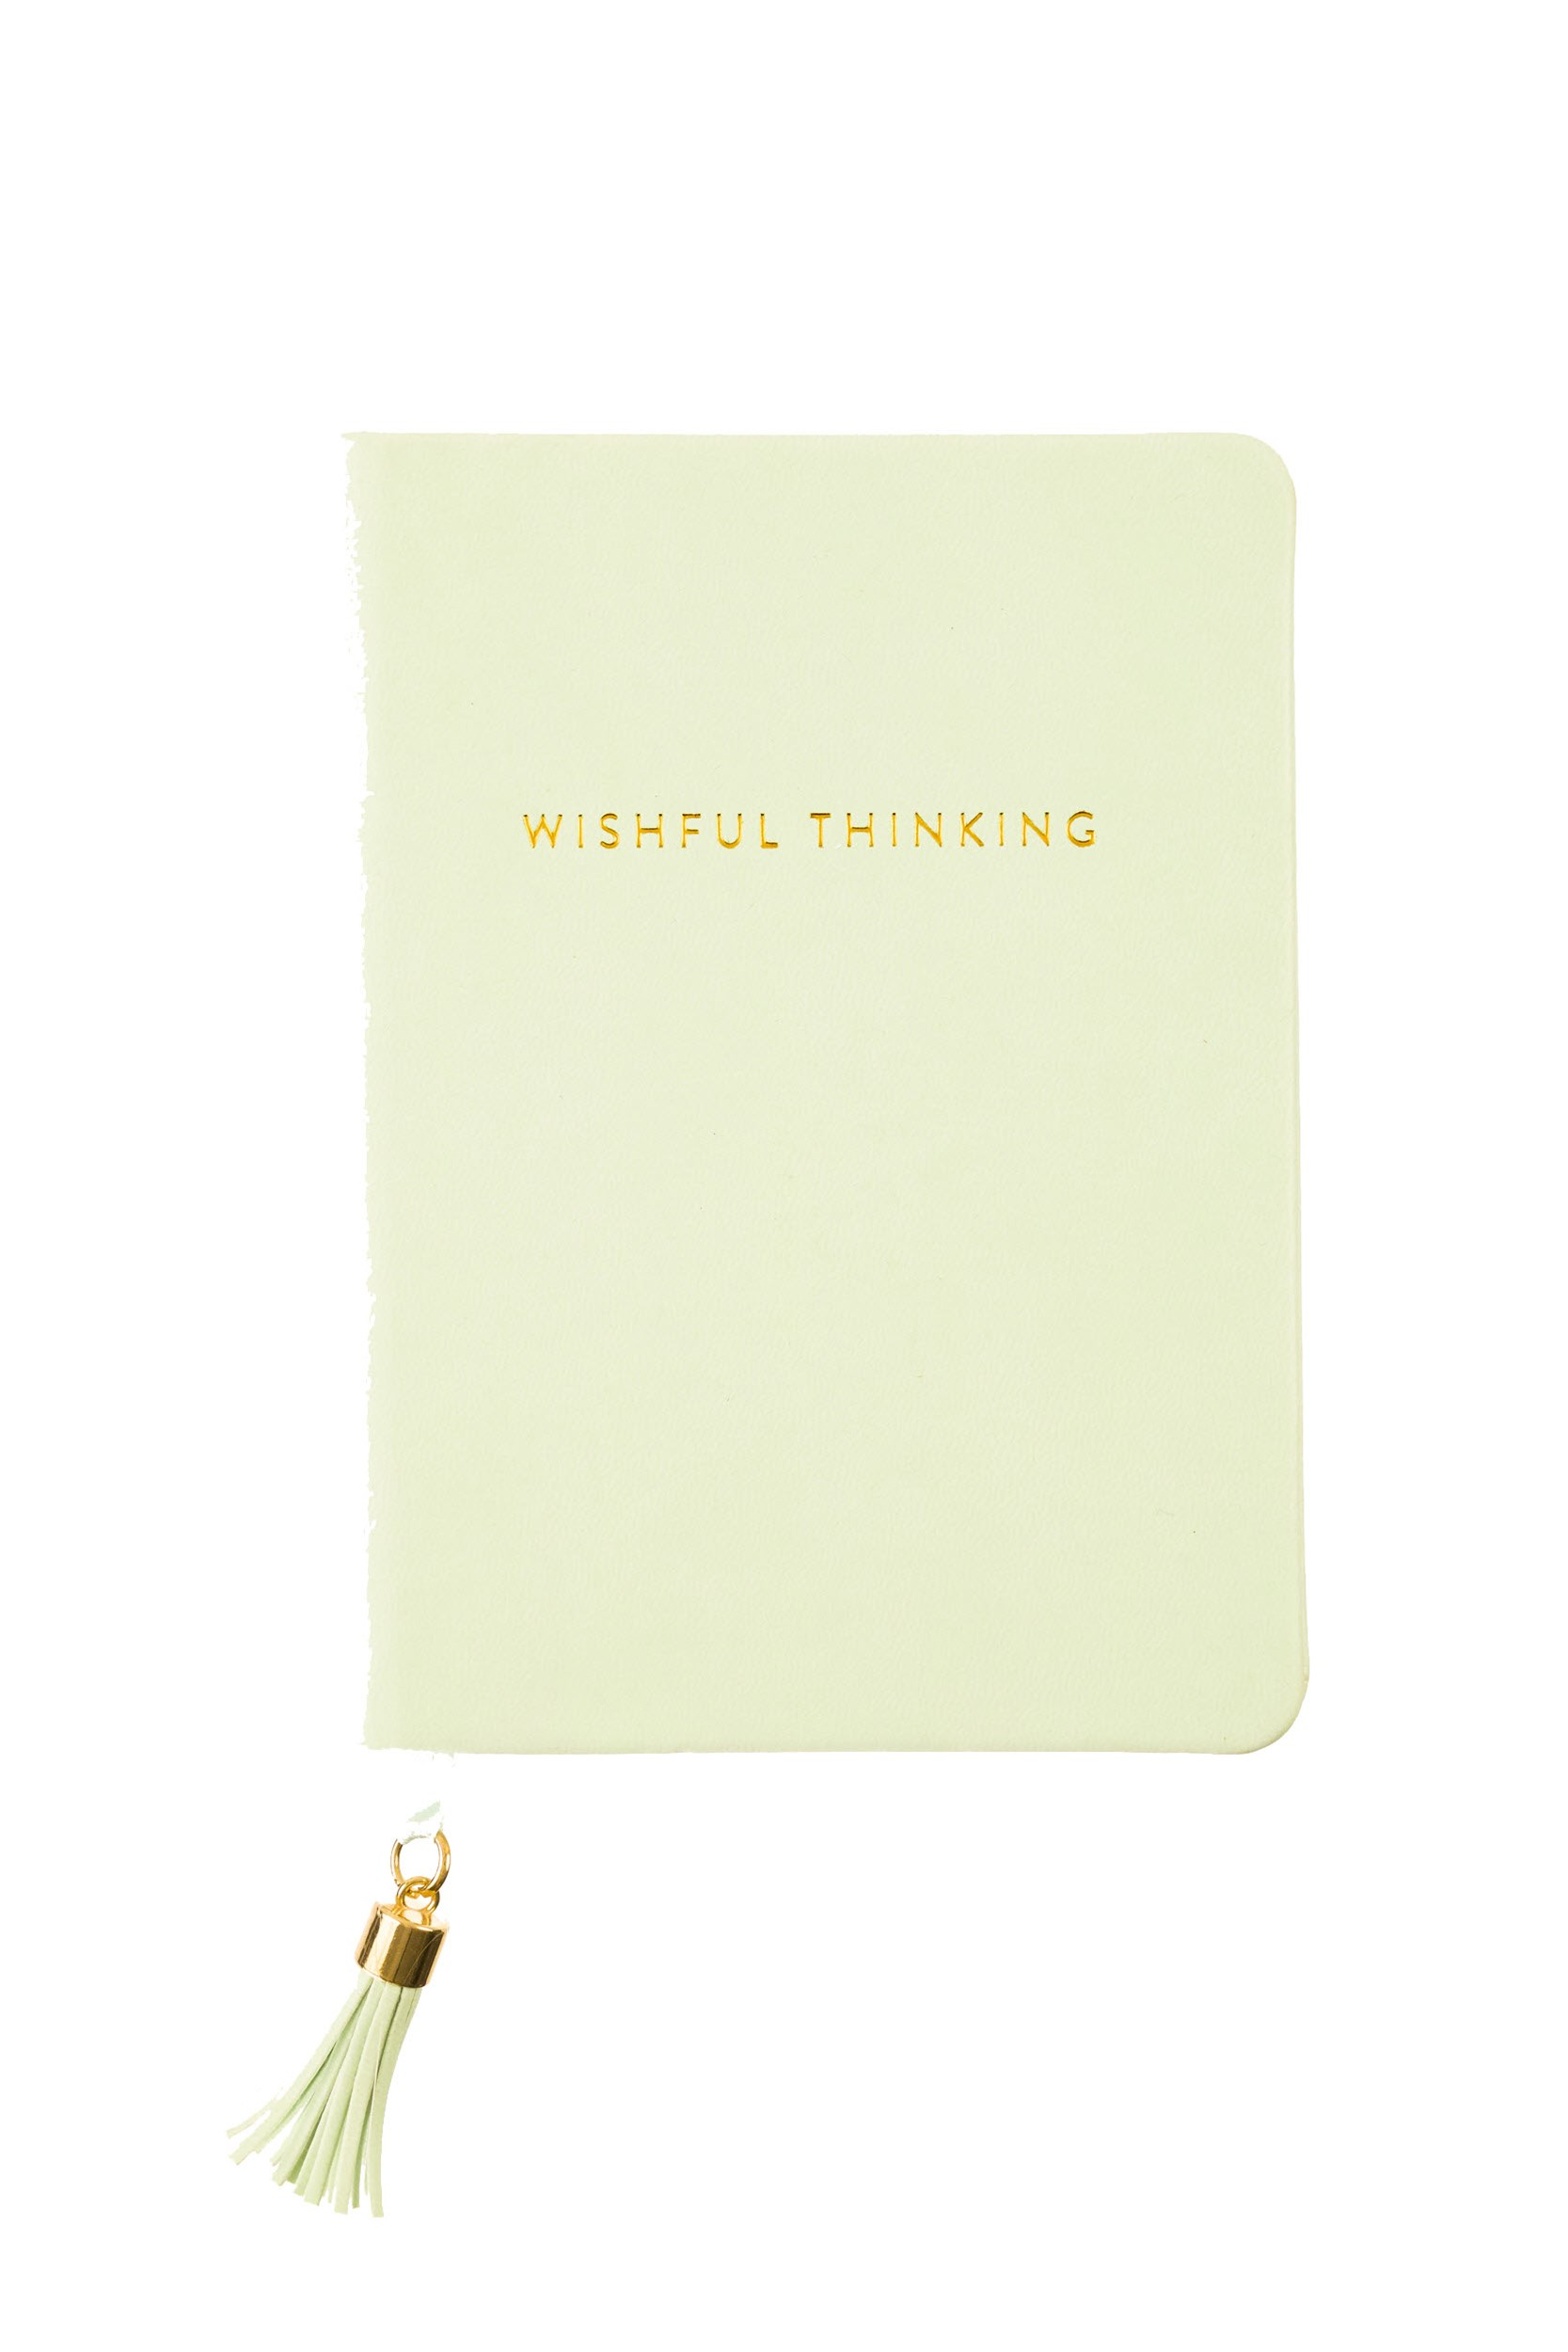 Tassel Journal: Pistachio Wishful Thinking (D320f)